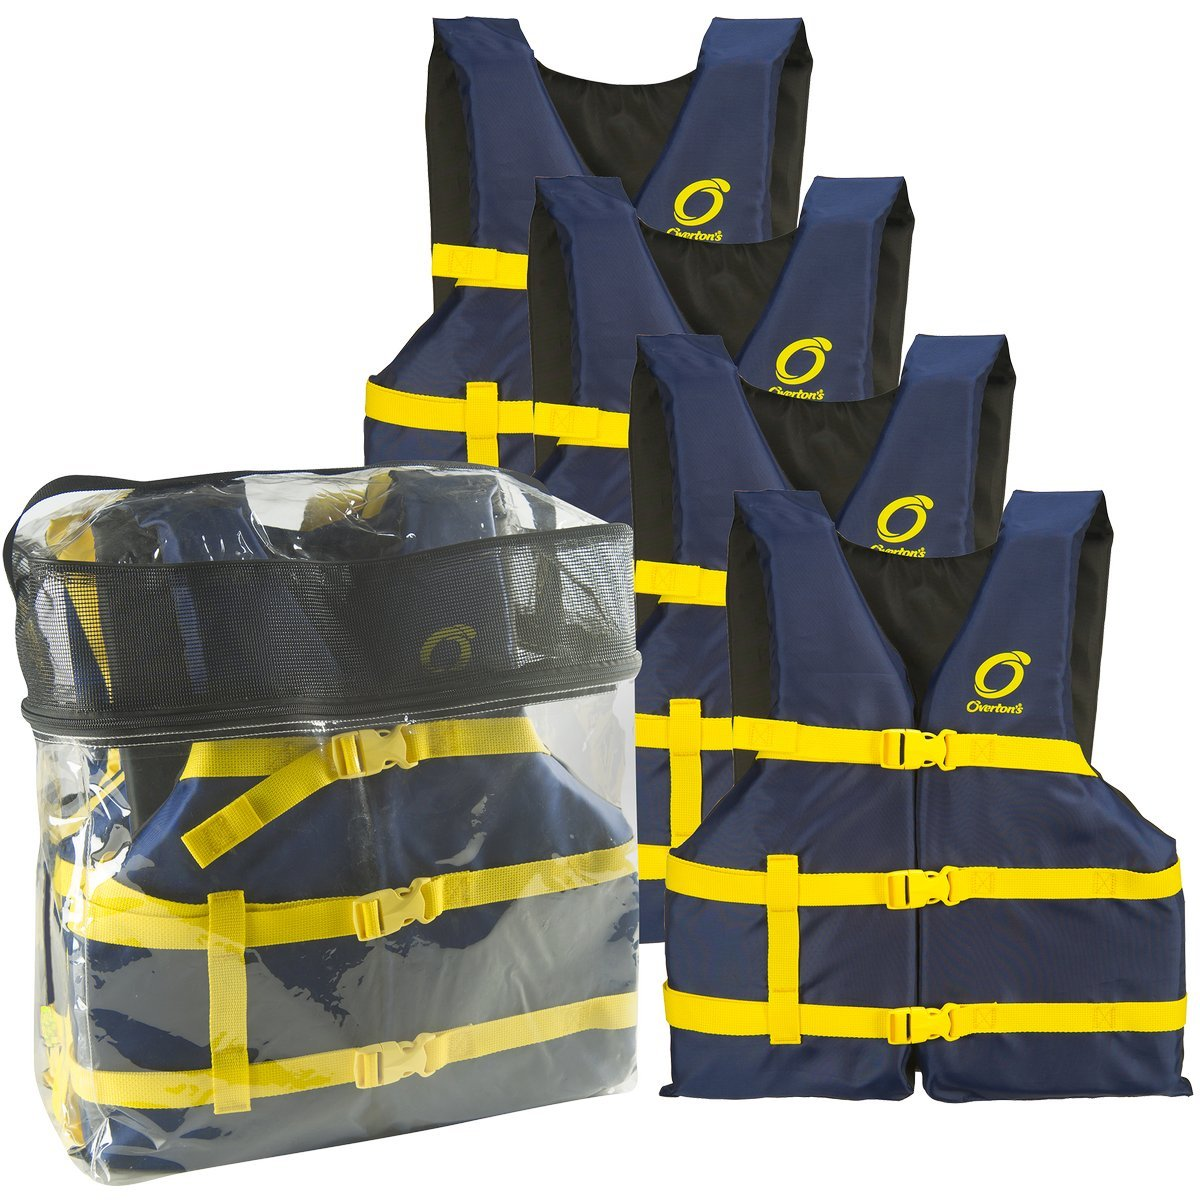 Life Jacket Vests for Boating Universal 4 Pack Unisex - Blue by Overton's